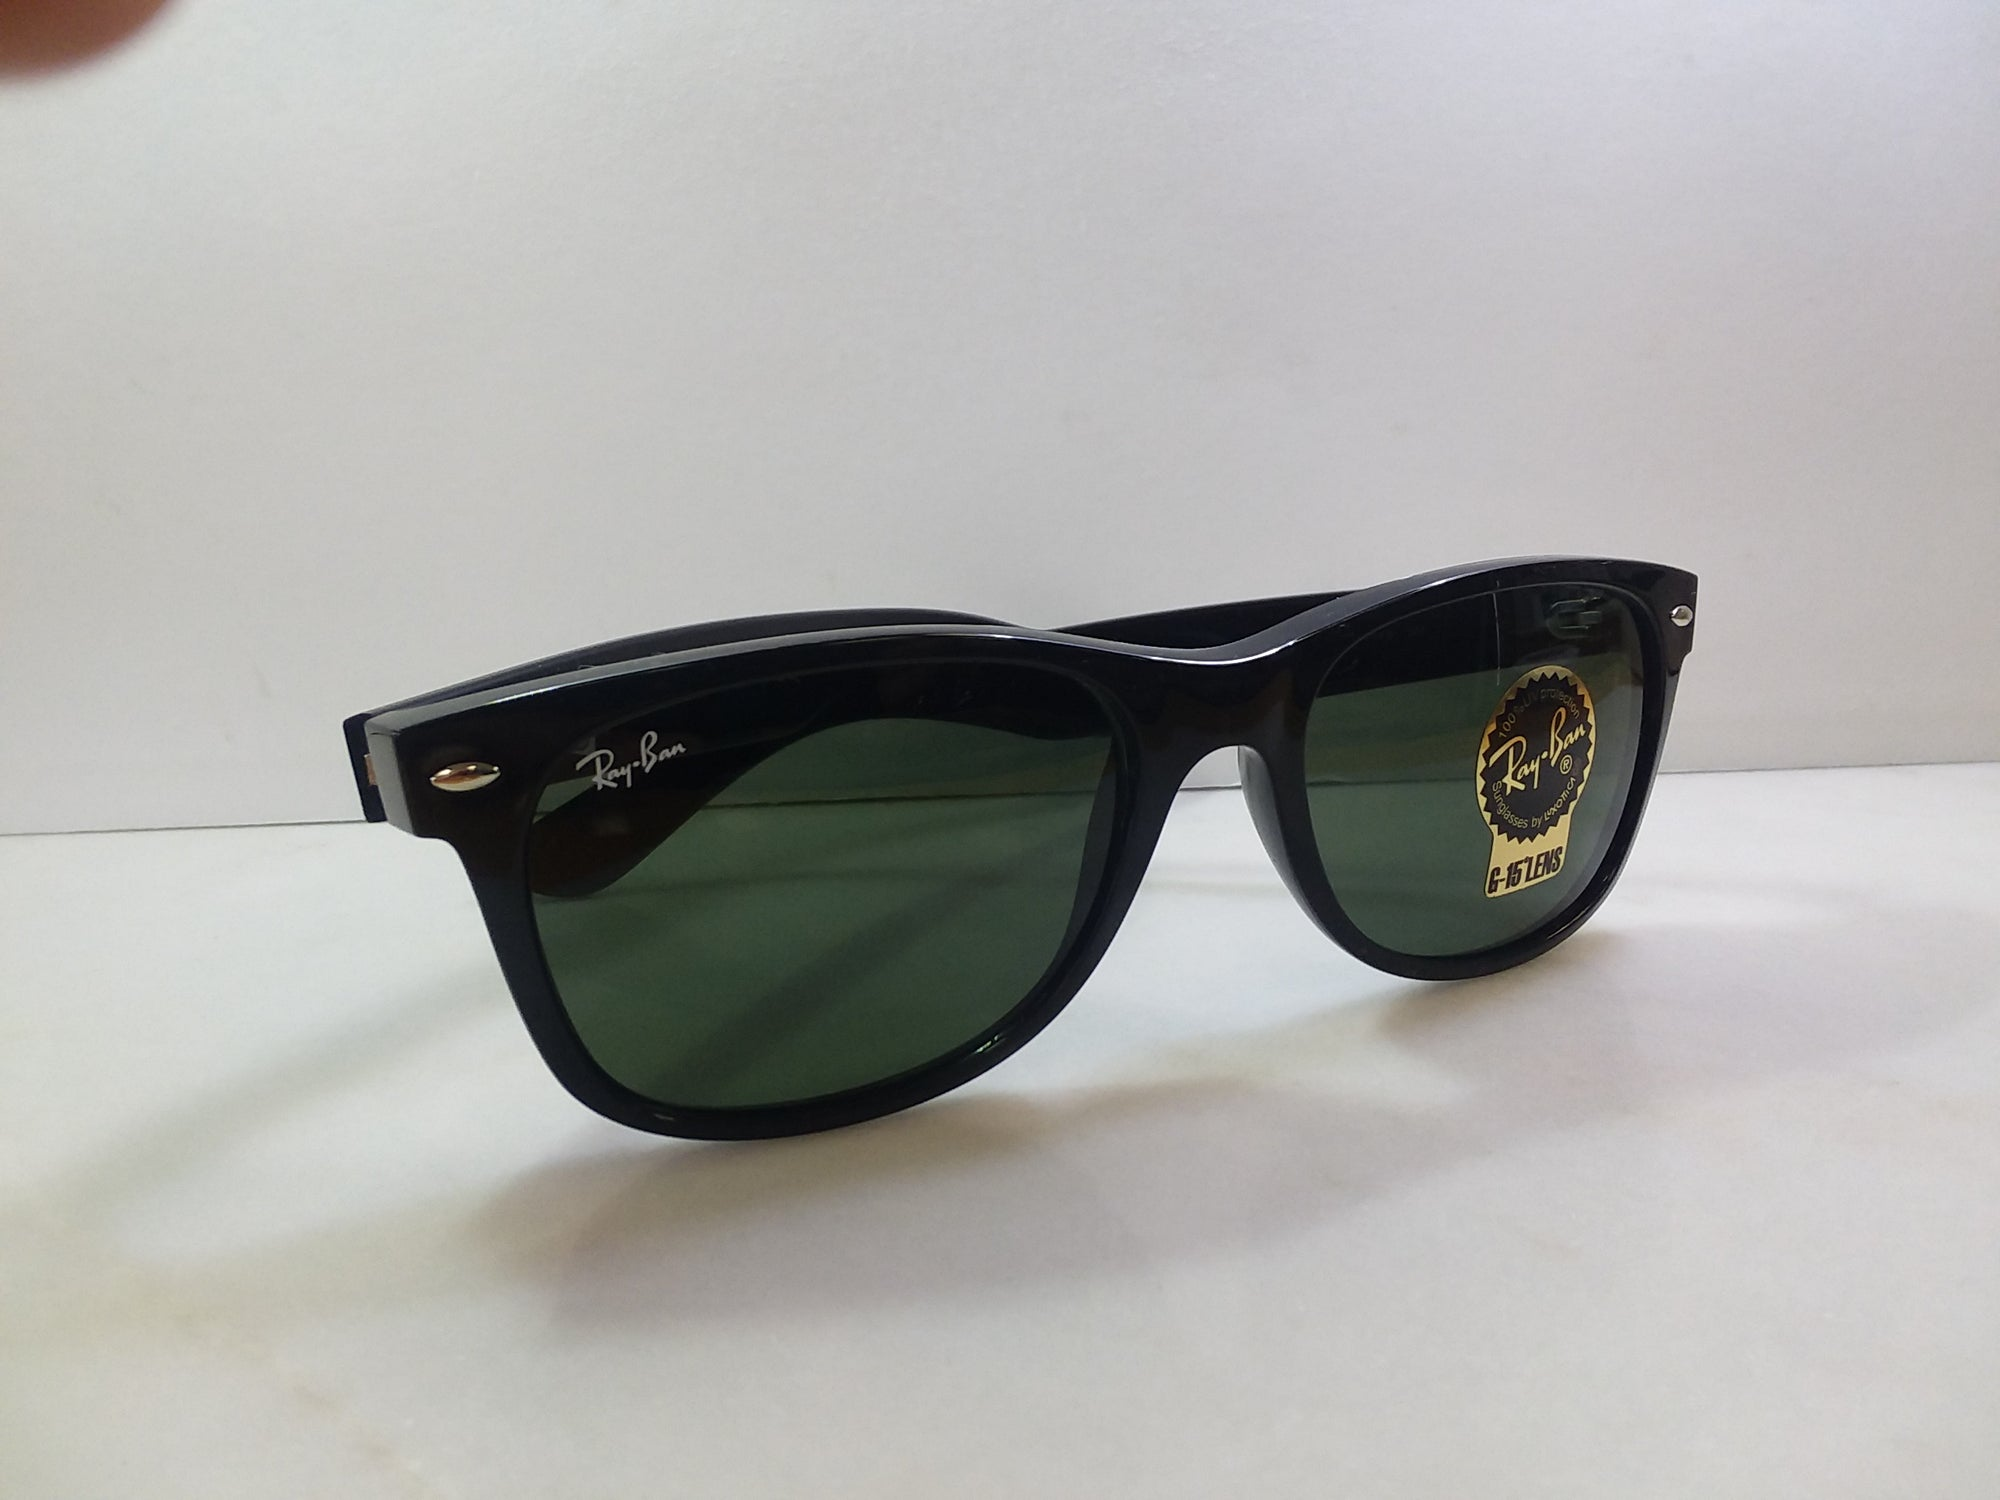 Ray Ban / Color / Gold / Style / Aviator / Eye Size 58